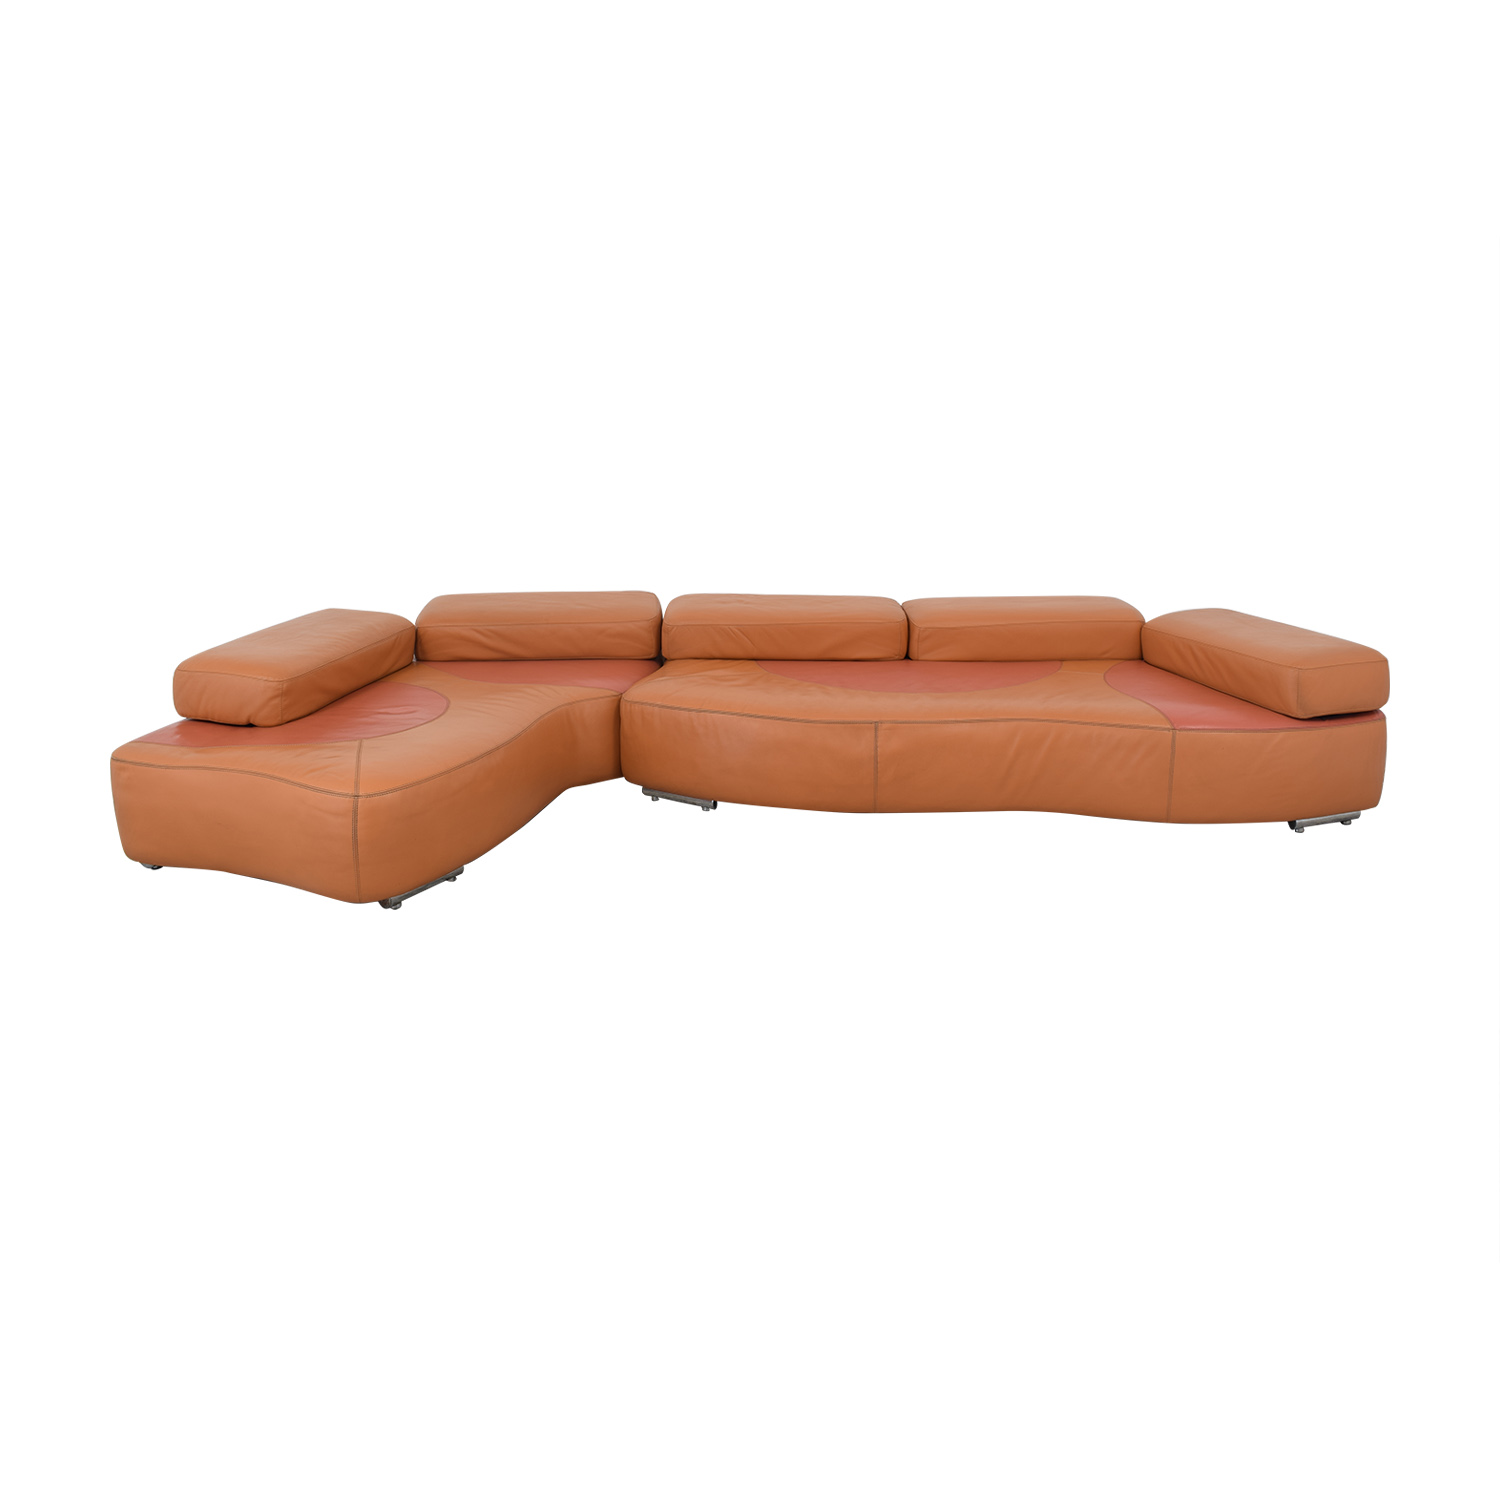 Poltromec Poltromec Two-Piece Sectional Sofa price